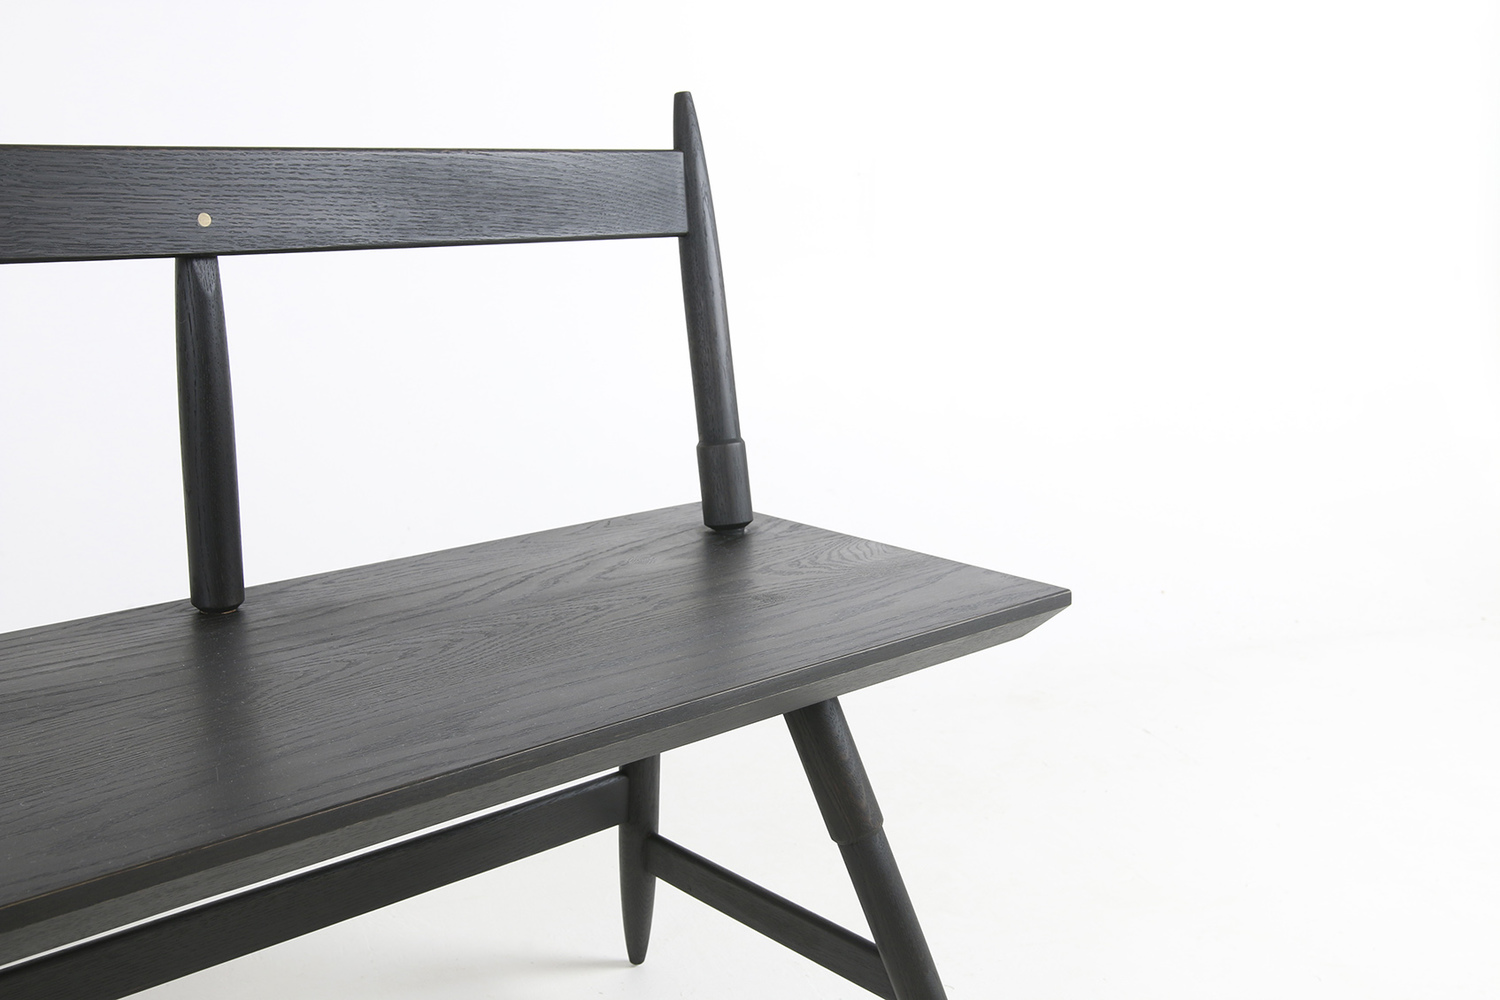 Rockport bench 80 inch with seasoned black detail shot studio dunn